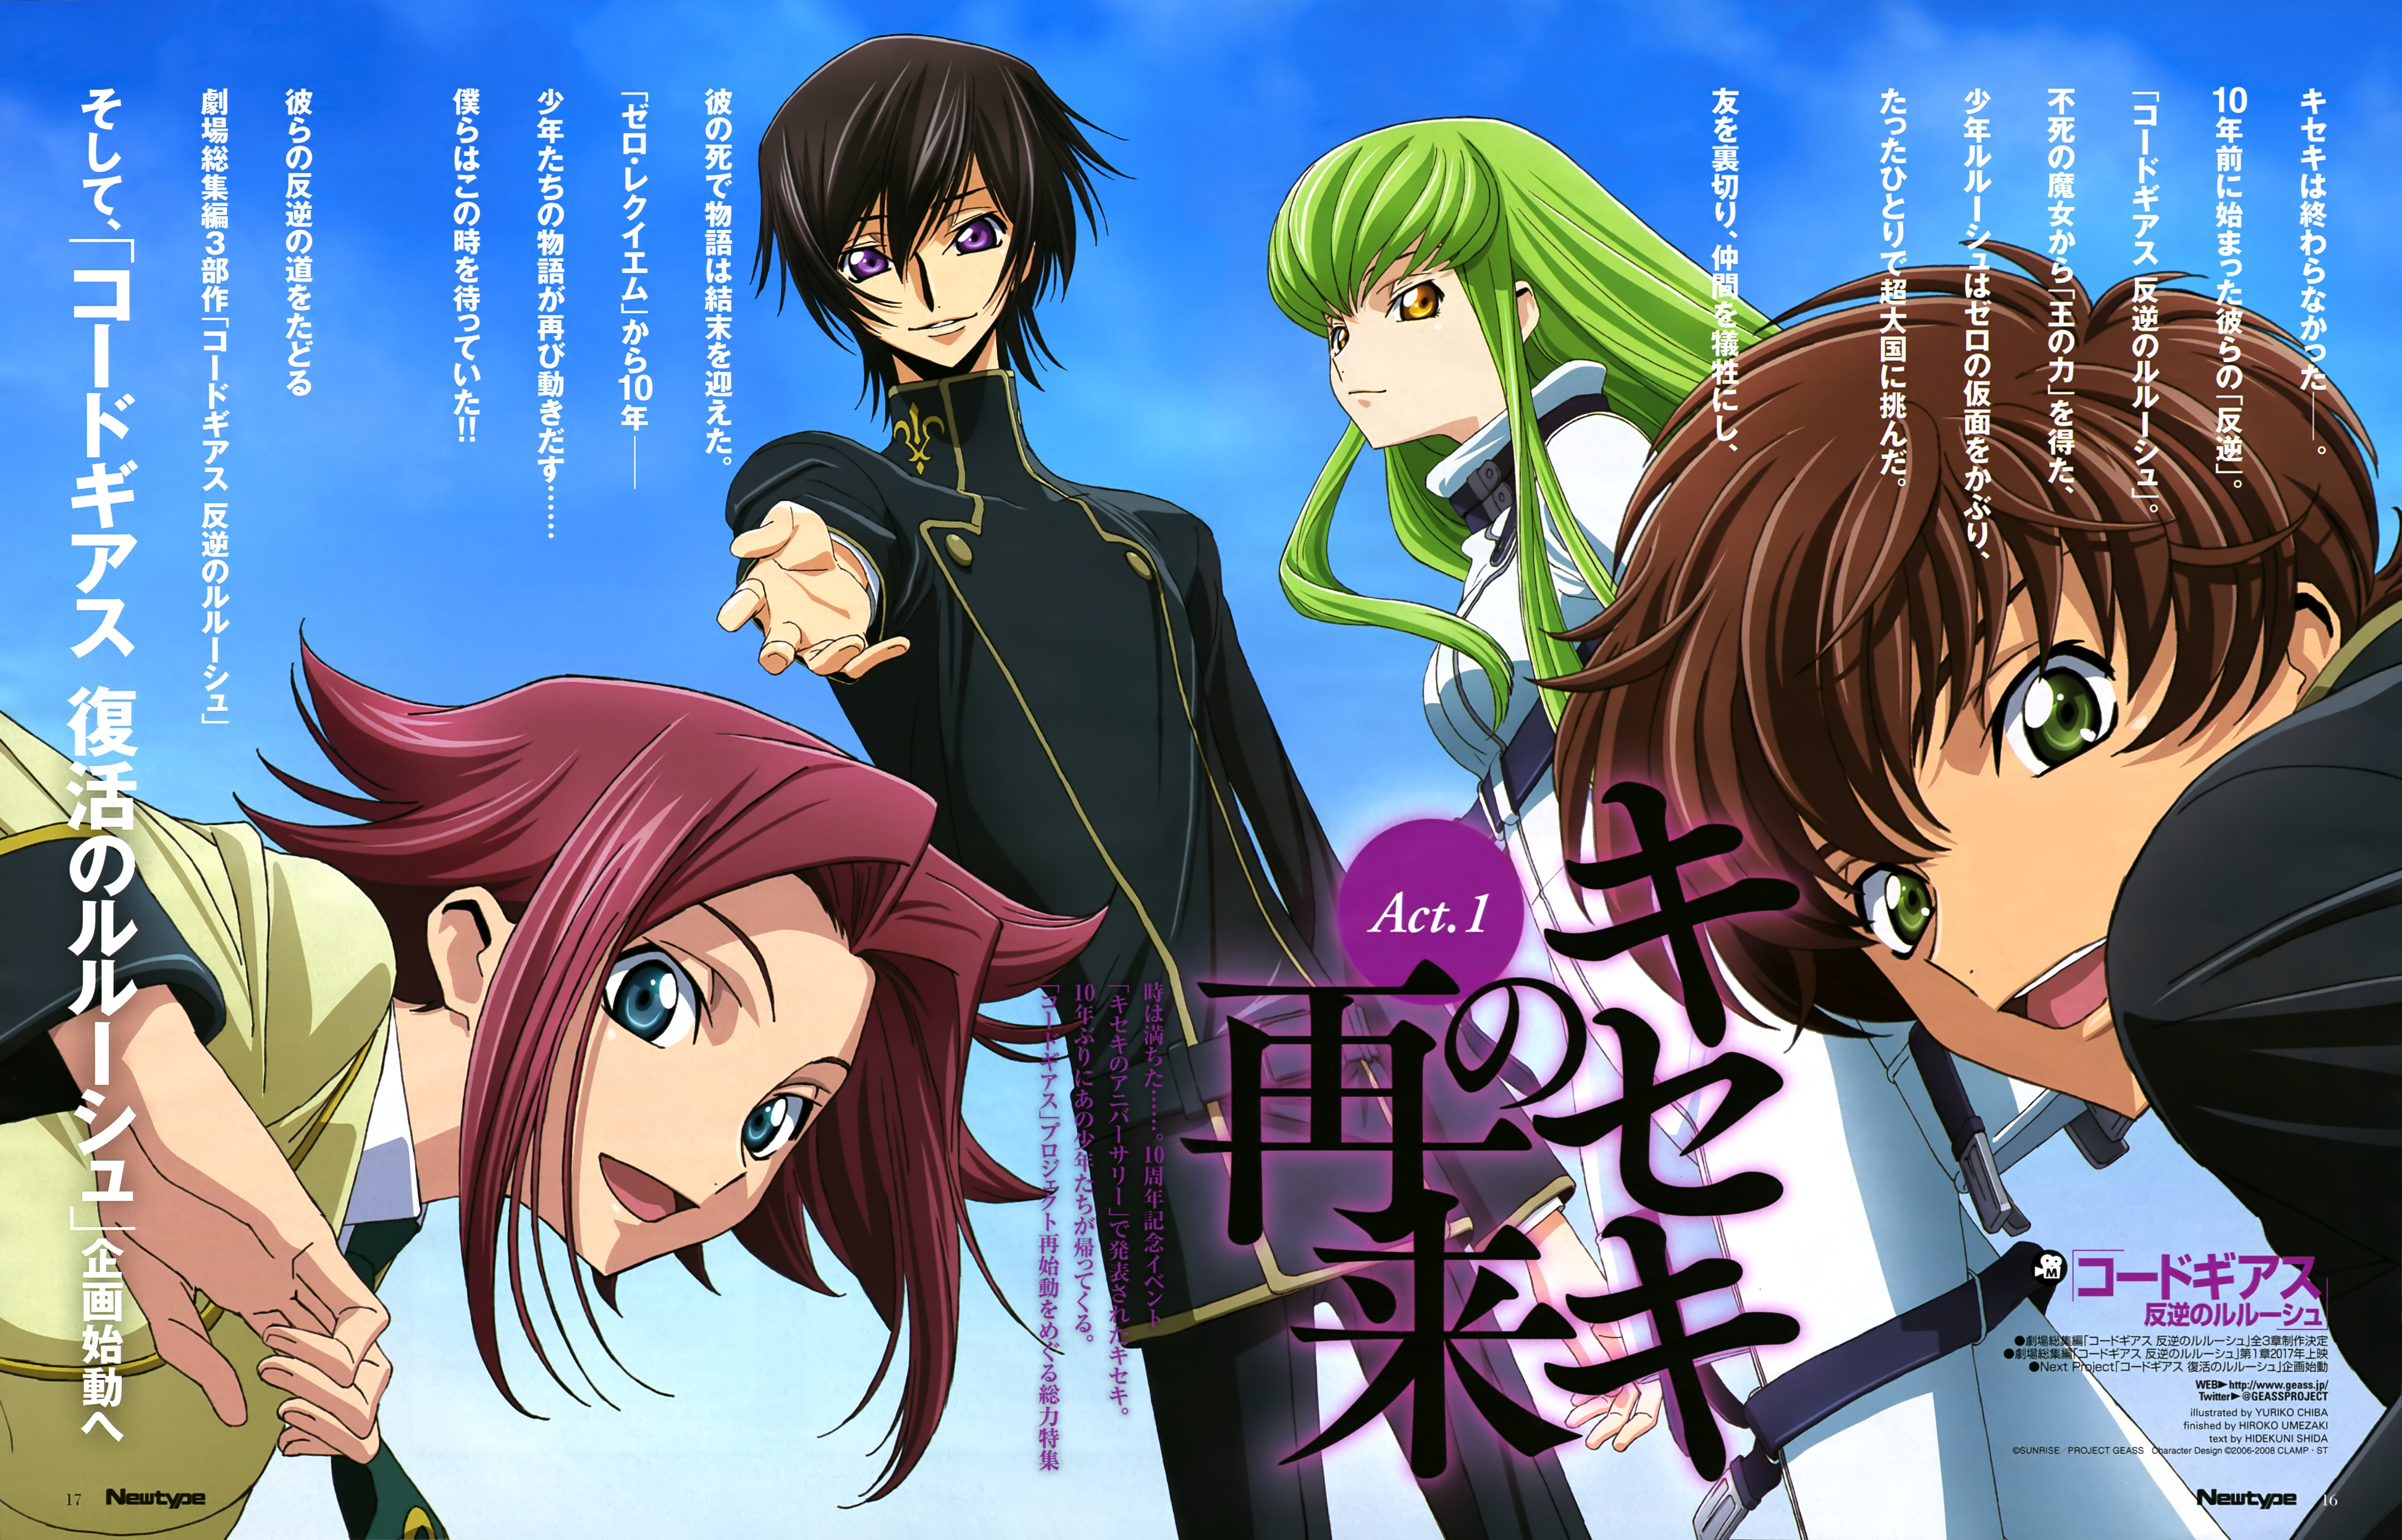 Code-Geass-2017-Newtype-Magazine-Visual